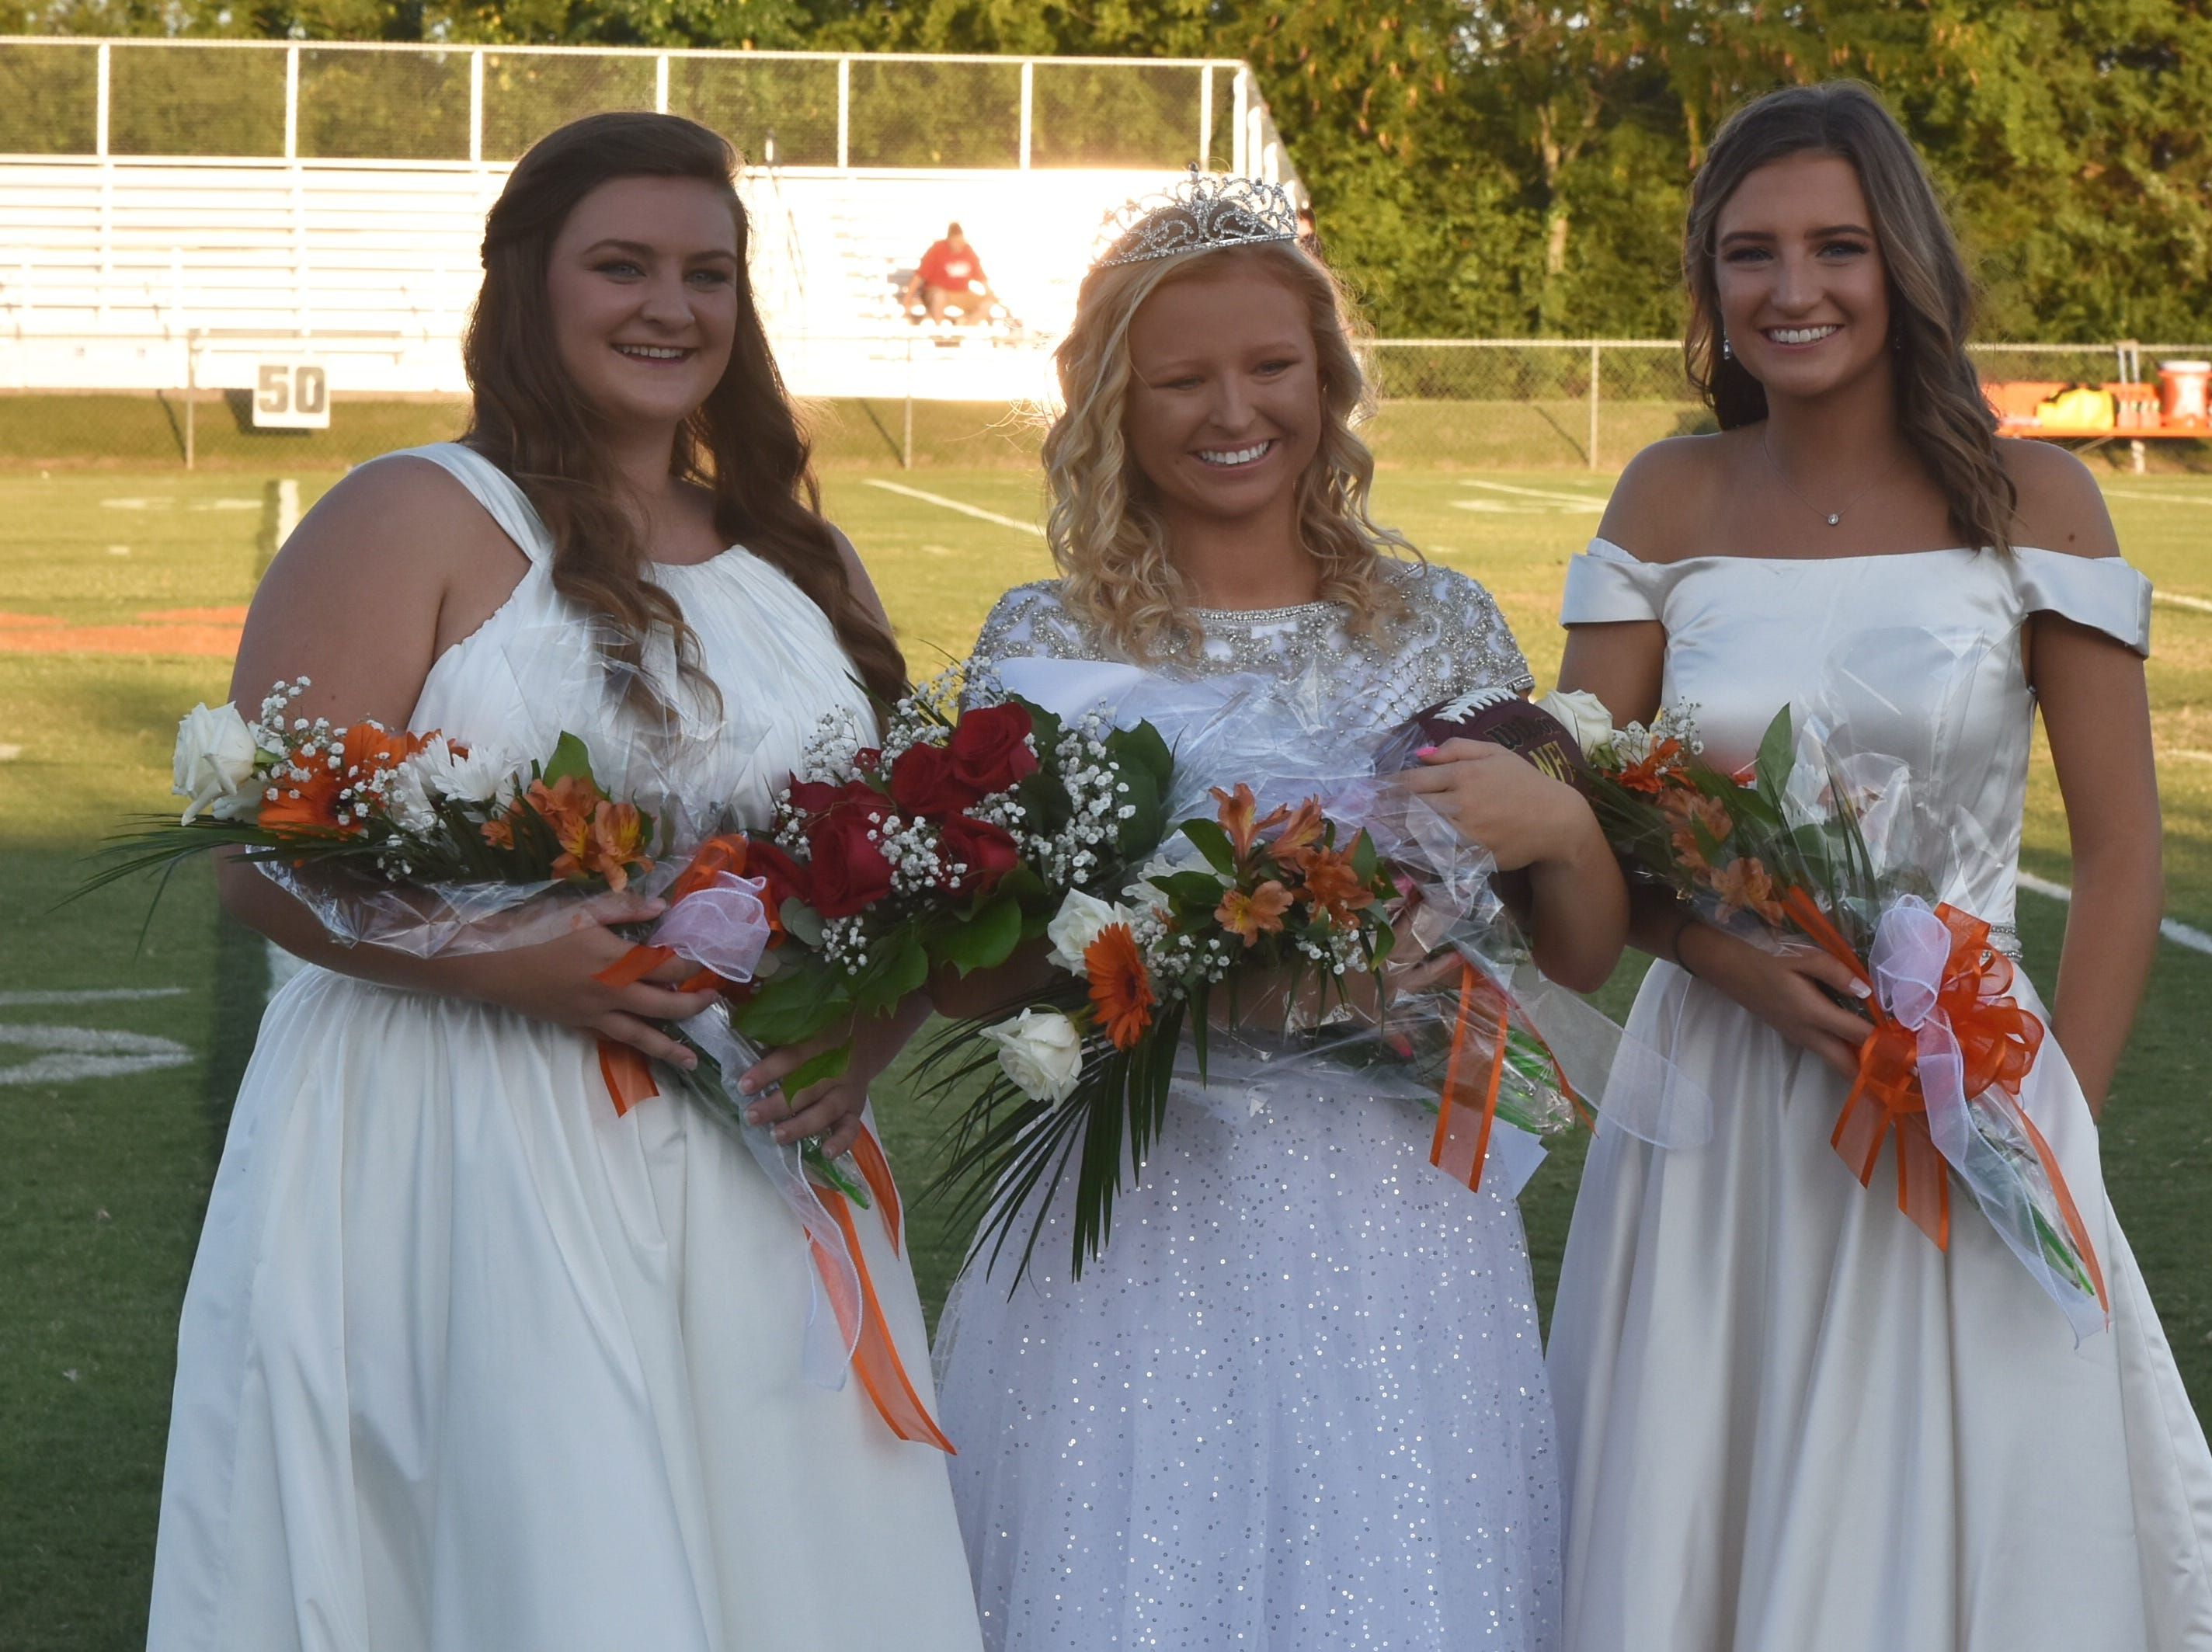 MTCS Senior Homecoming Court Friday night against Ezell-Harding.